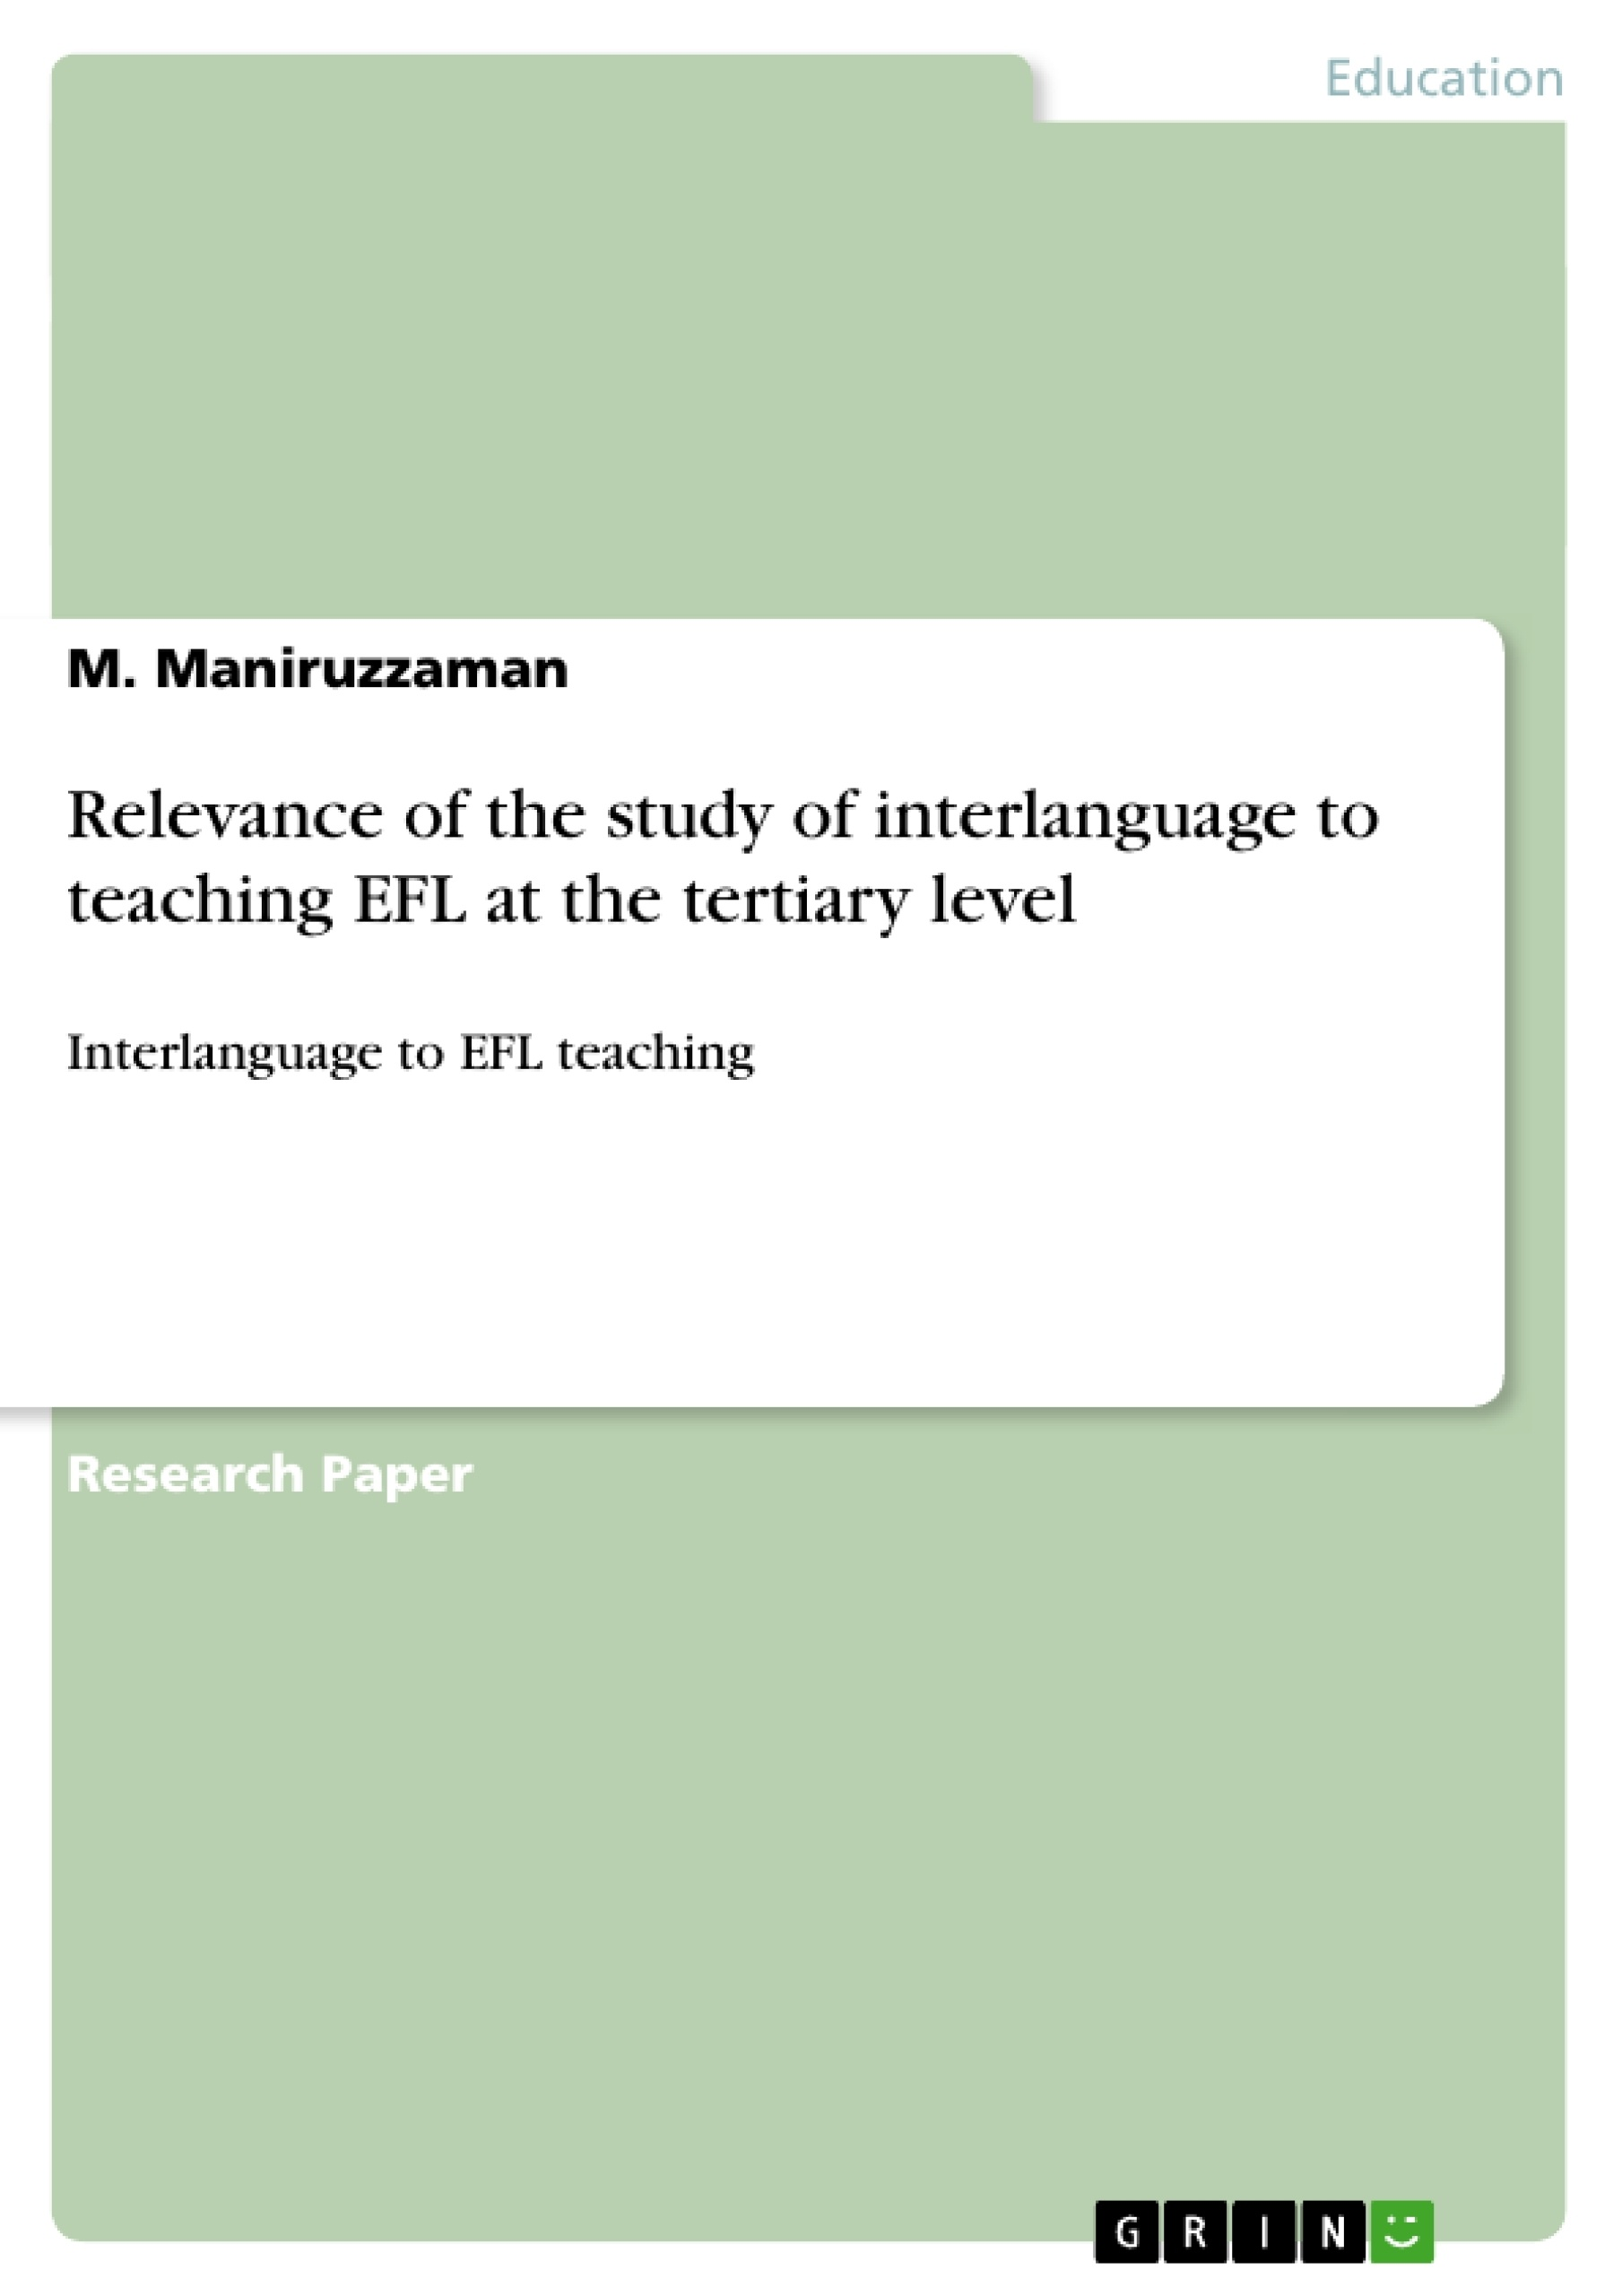 essay on interlanguage And language research interlanguage pragmatics: a compendium of theory  and  interaction ritual: essays on face-to-face behavior garden city, ny.